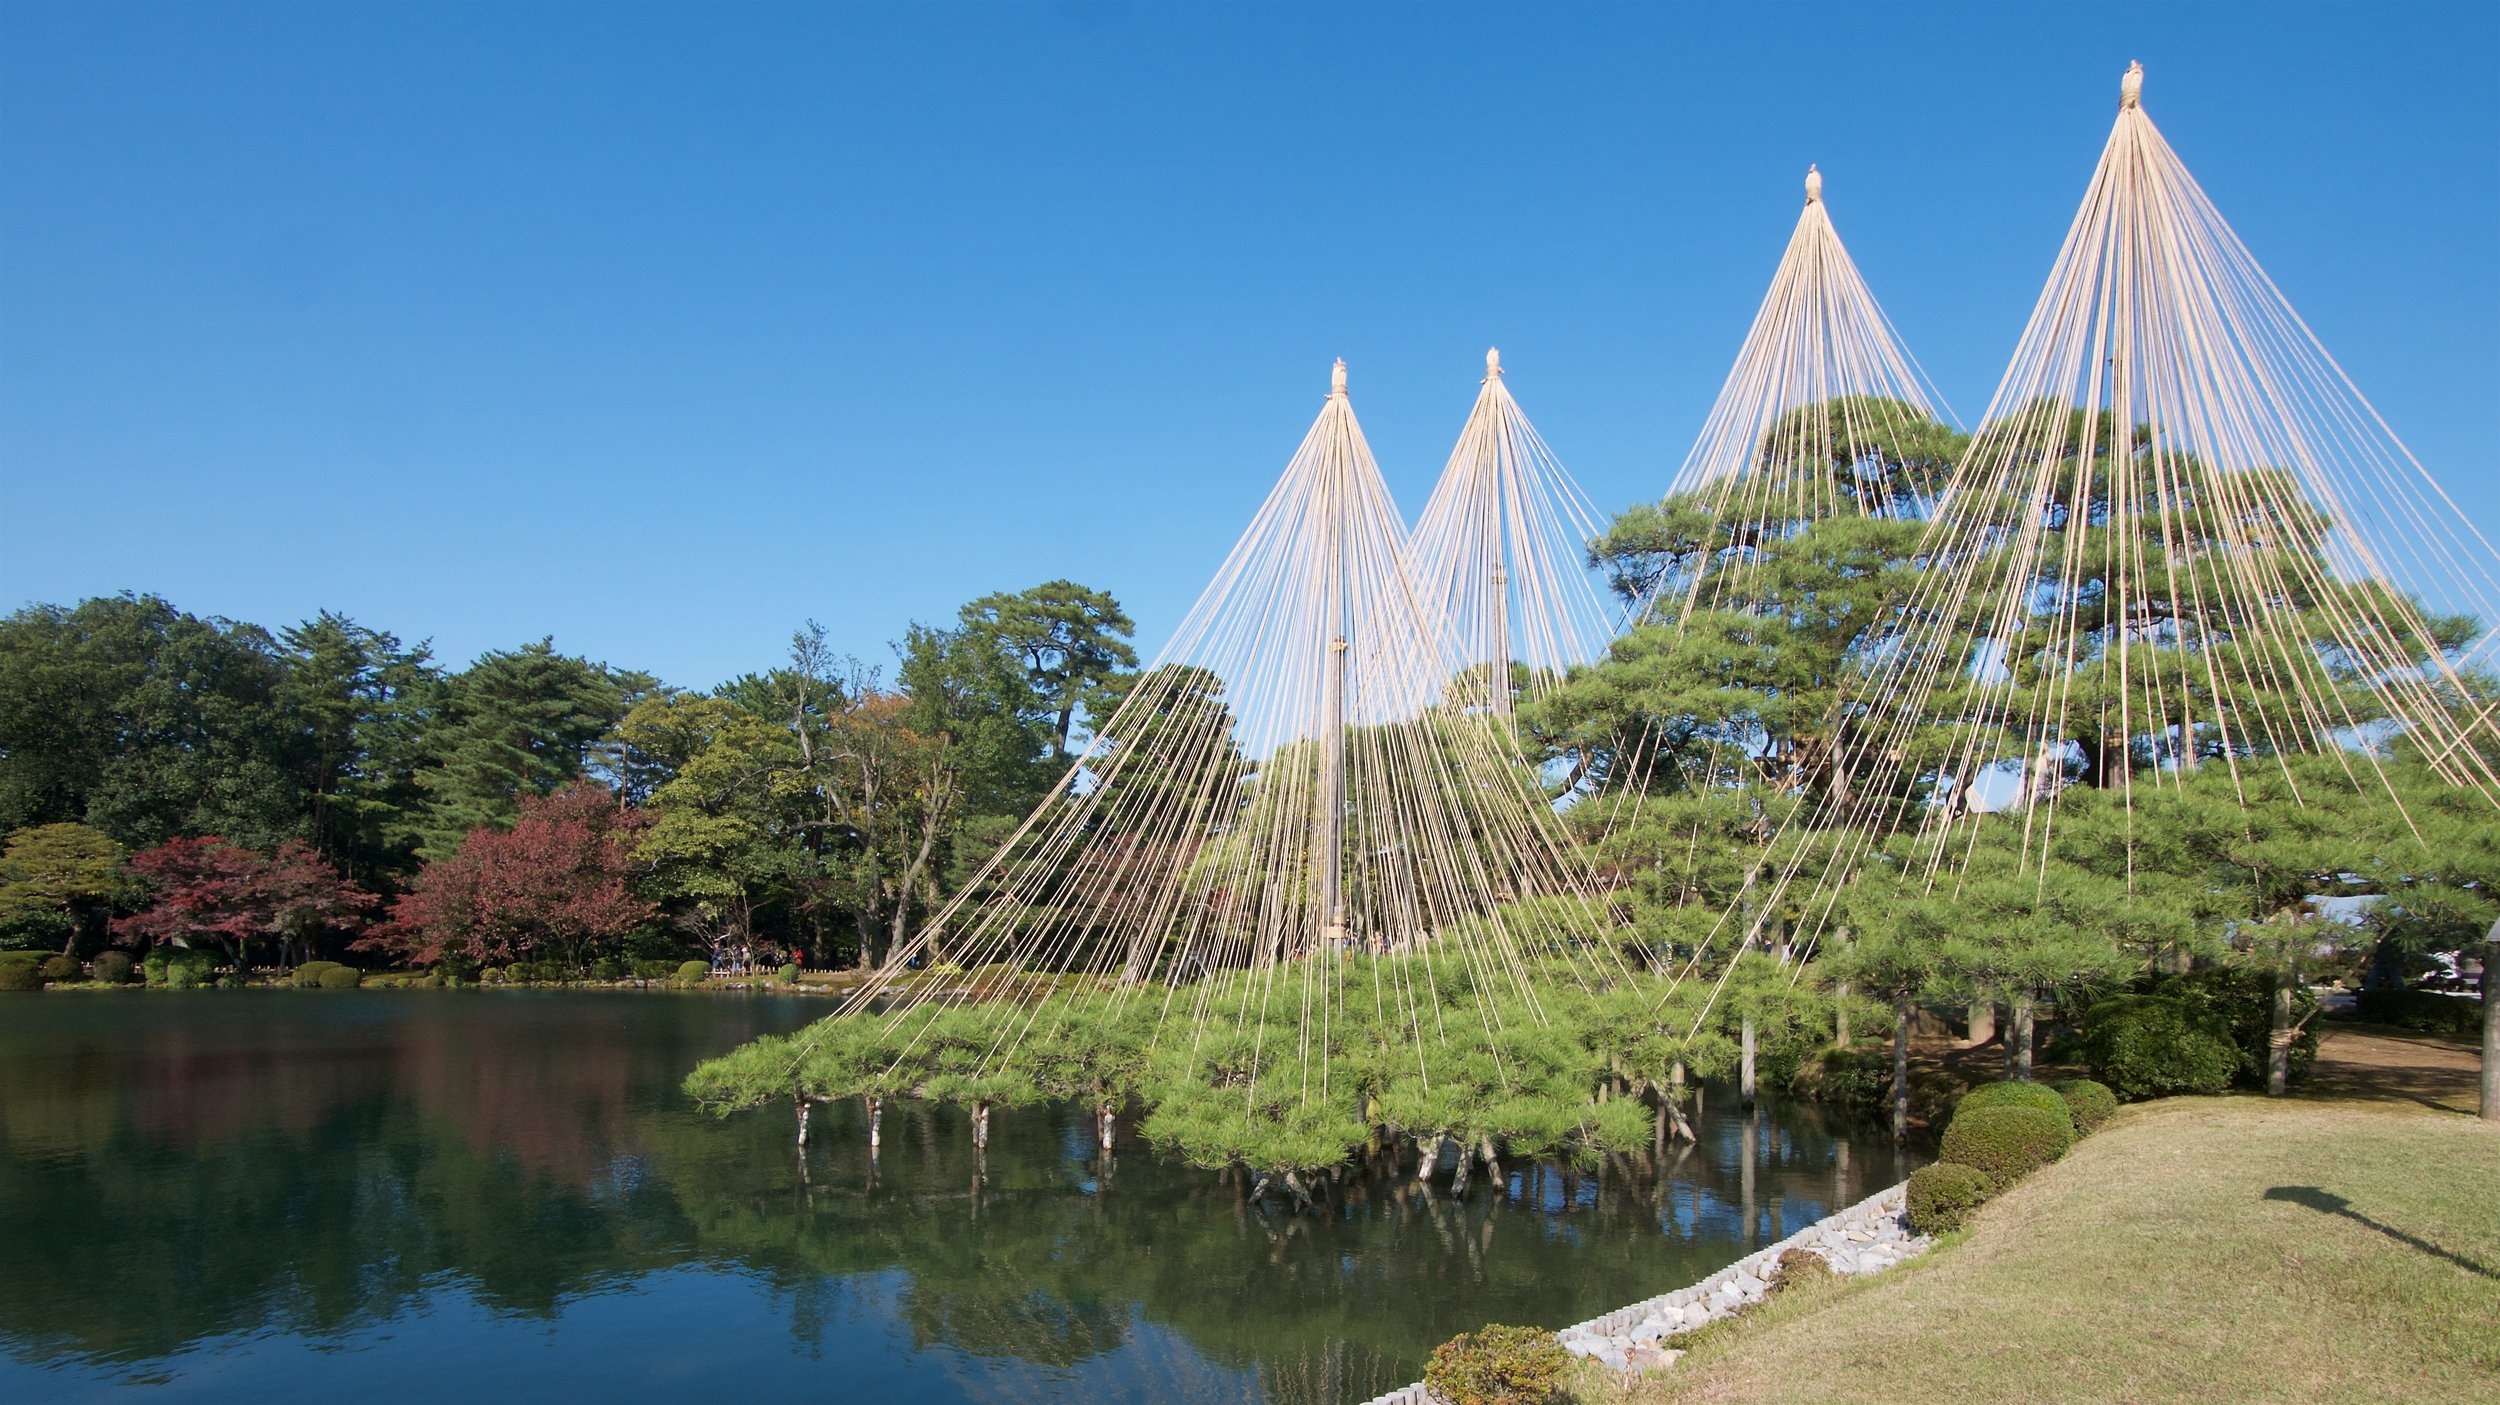 Trees supported by ropes and poles